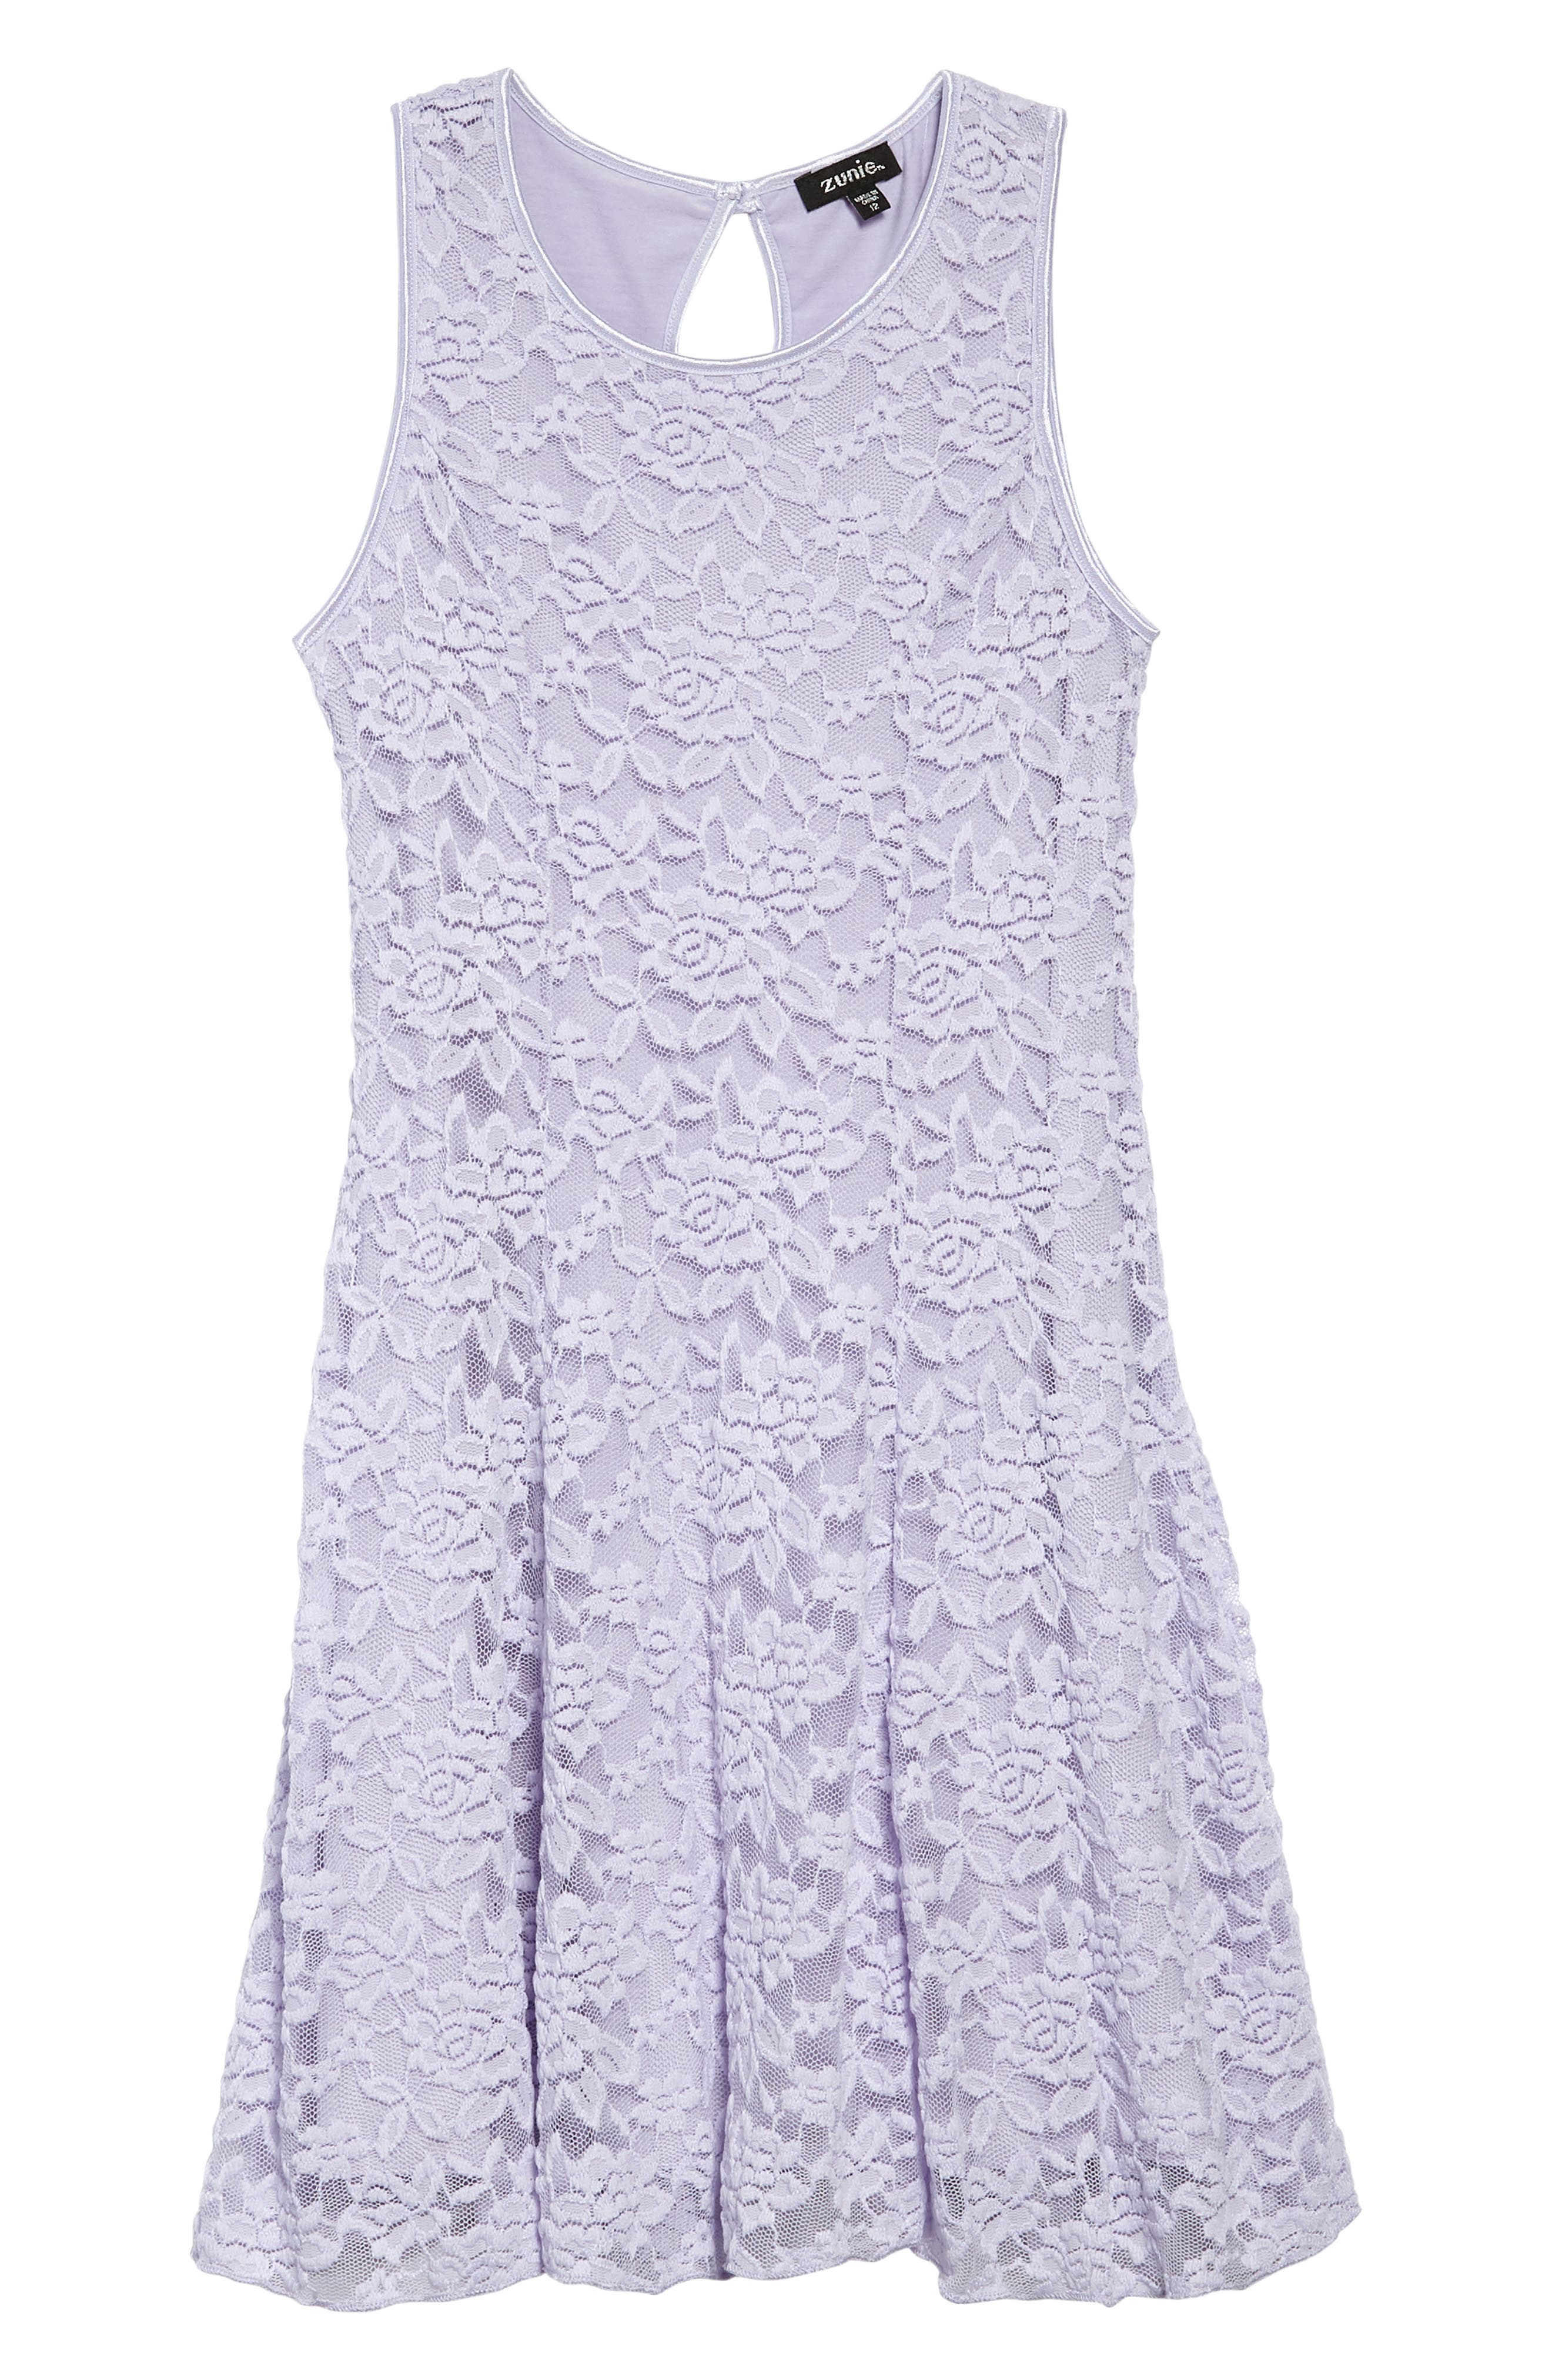 Floral Lace Sleeveless Dress,                         Main,                         color, Lilac